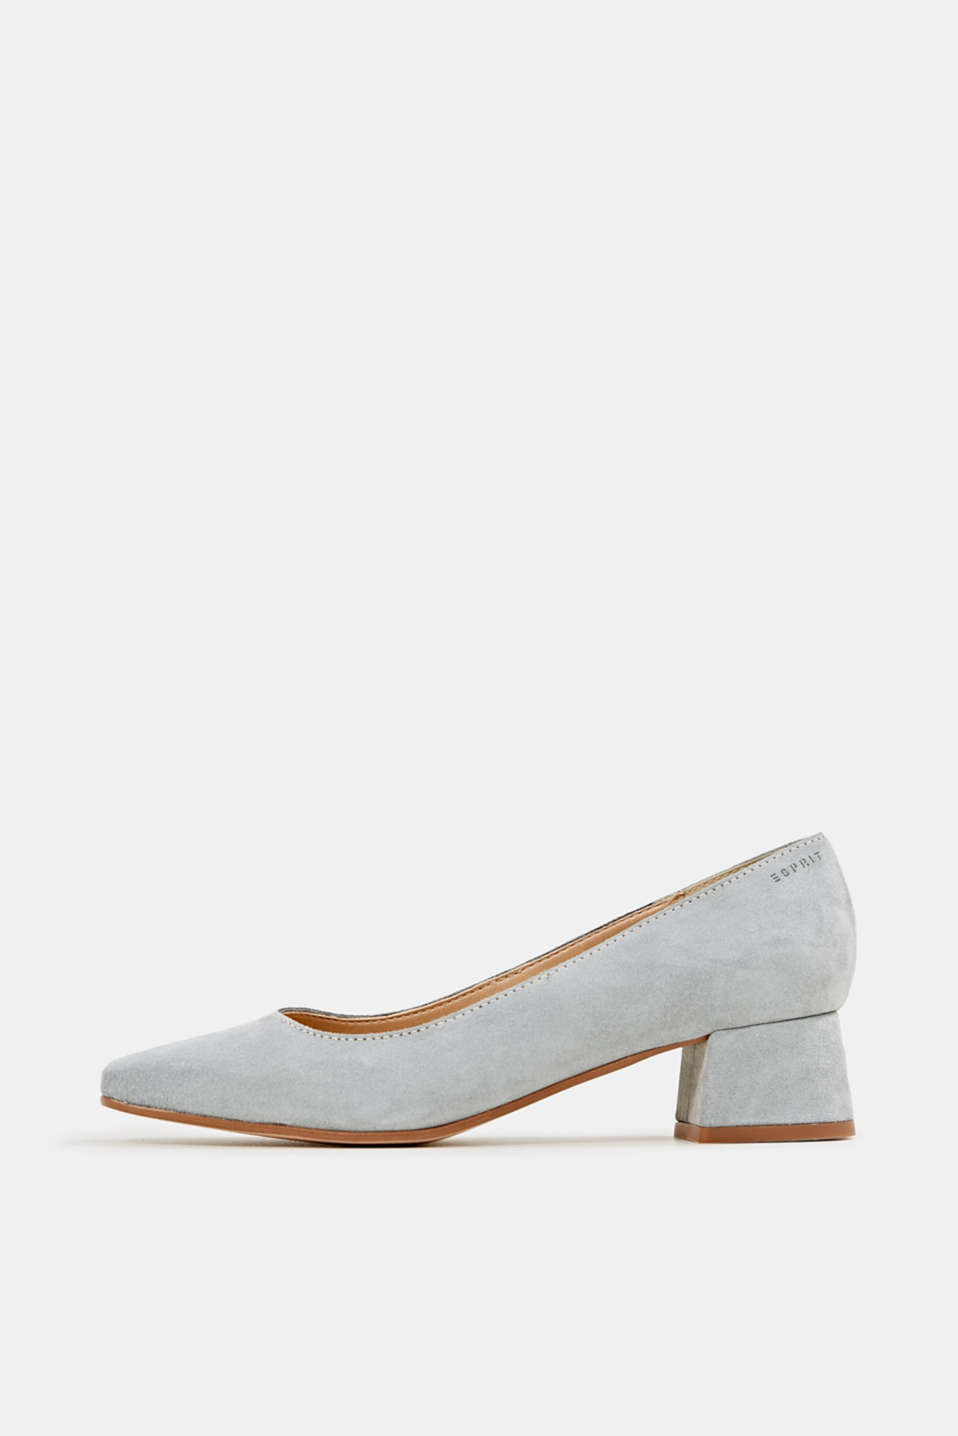 Esprit - Square court shoes made of suede